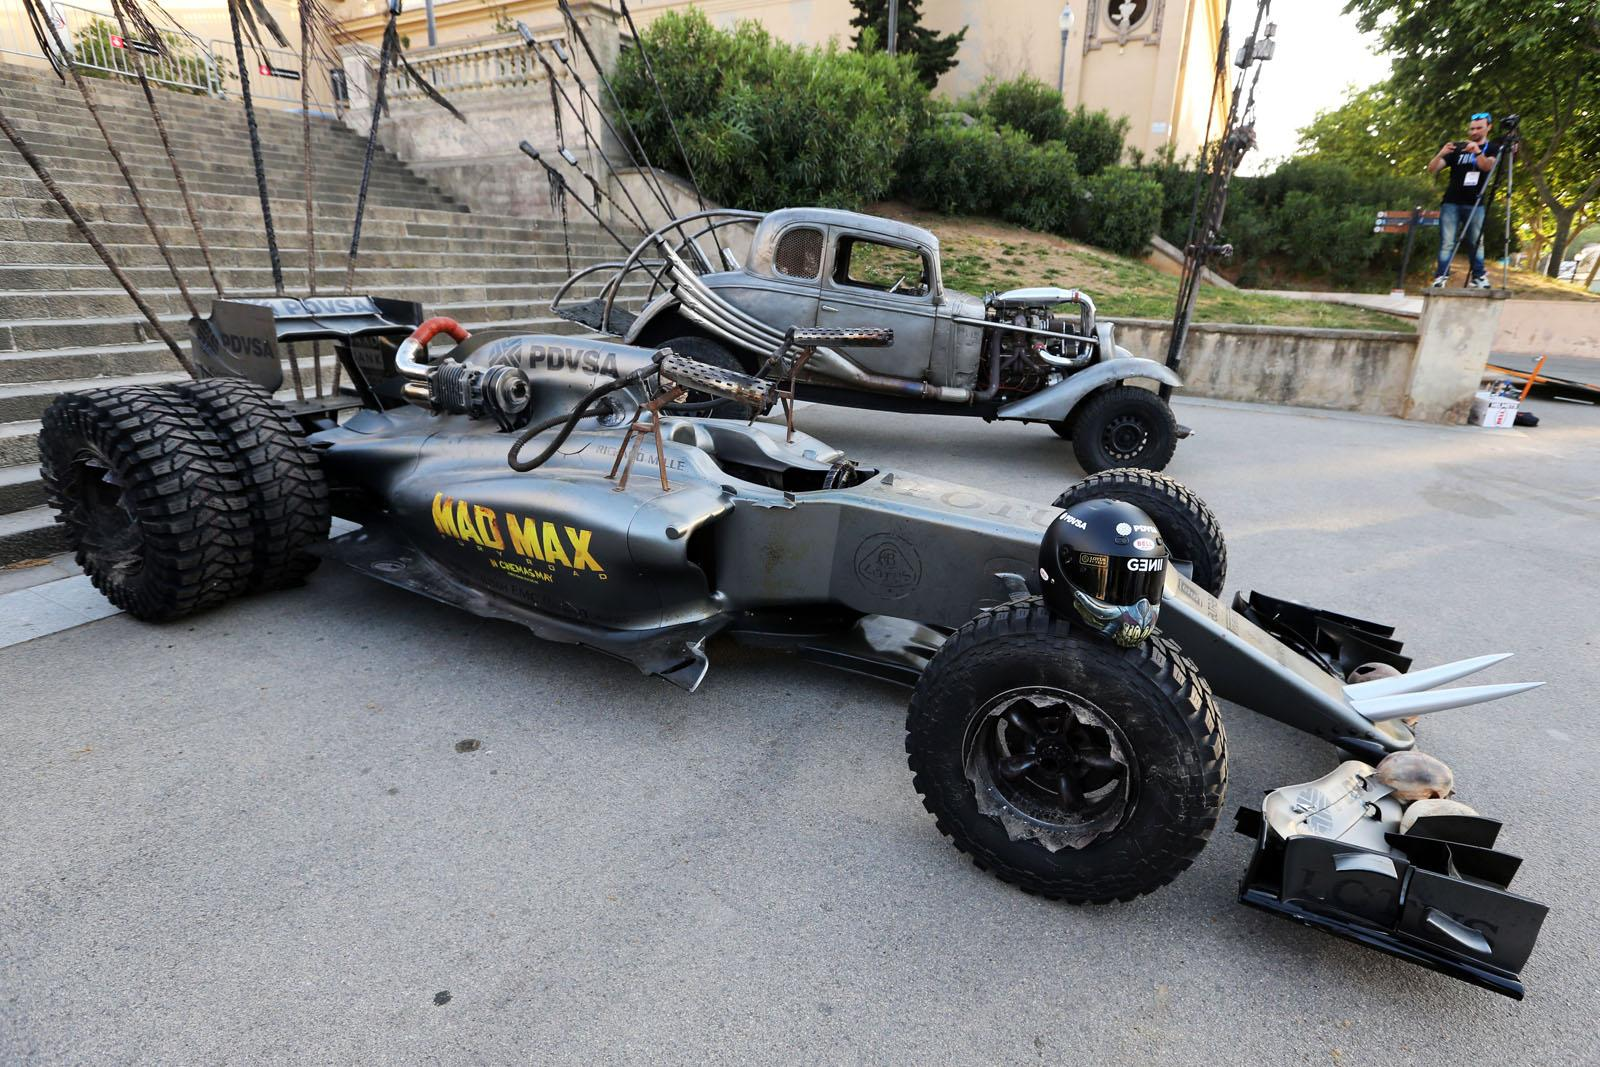 hight resolution of this flame throwing lotus f1 car is sure to resurrect the sport s dying fan base